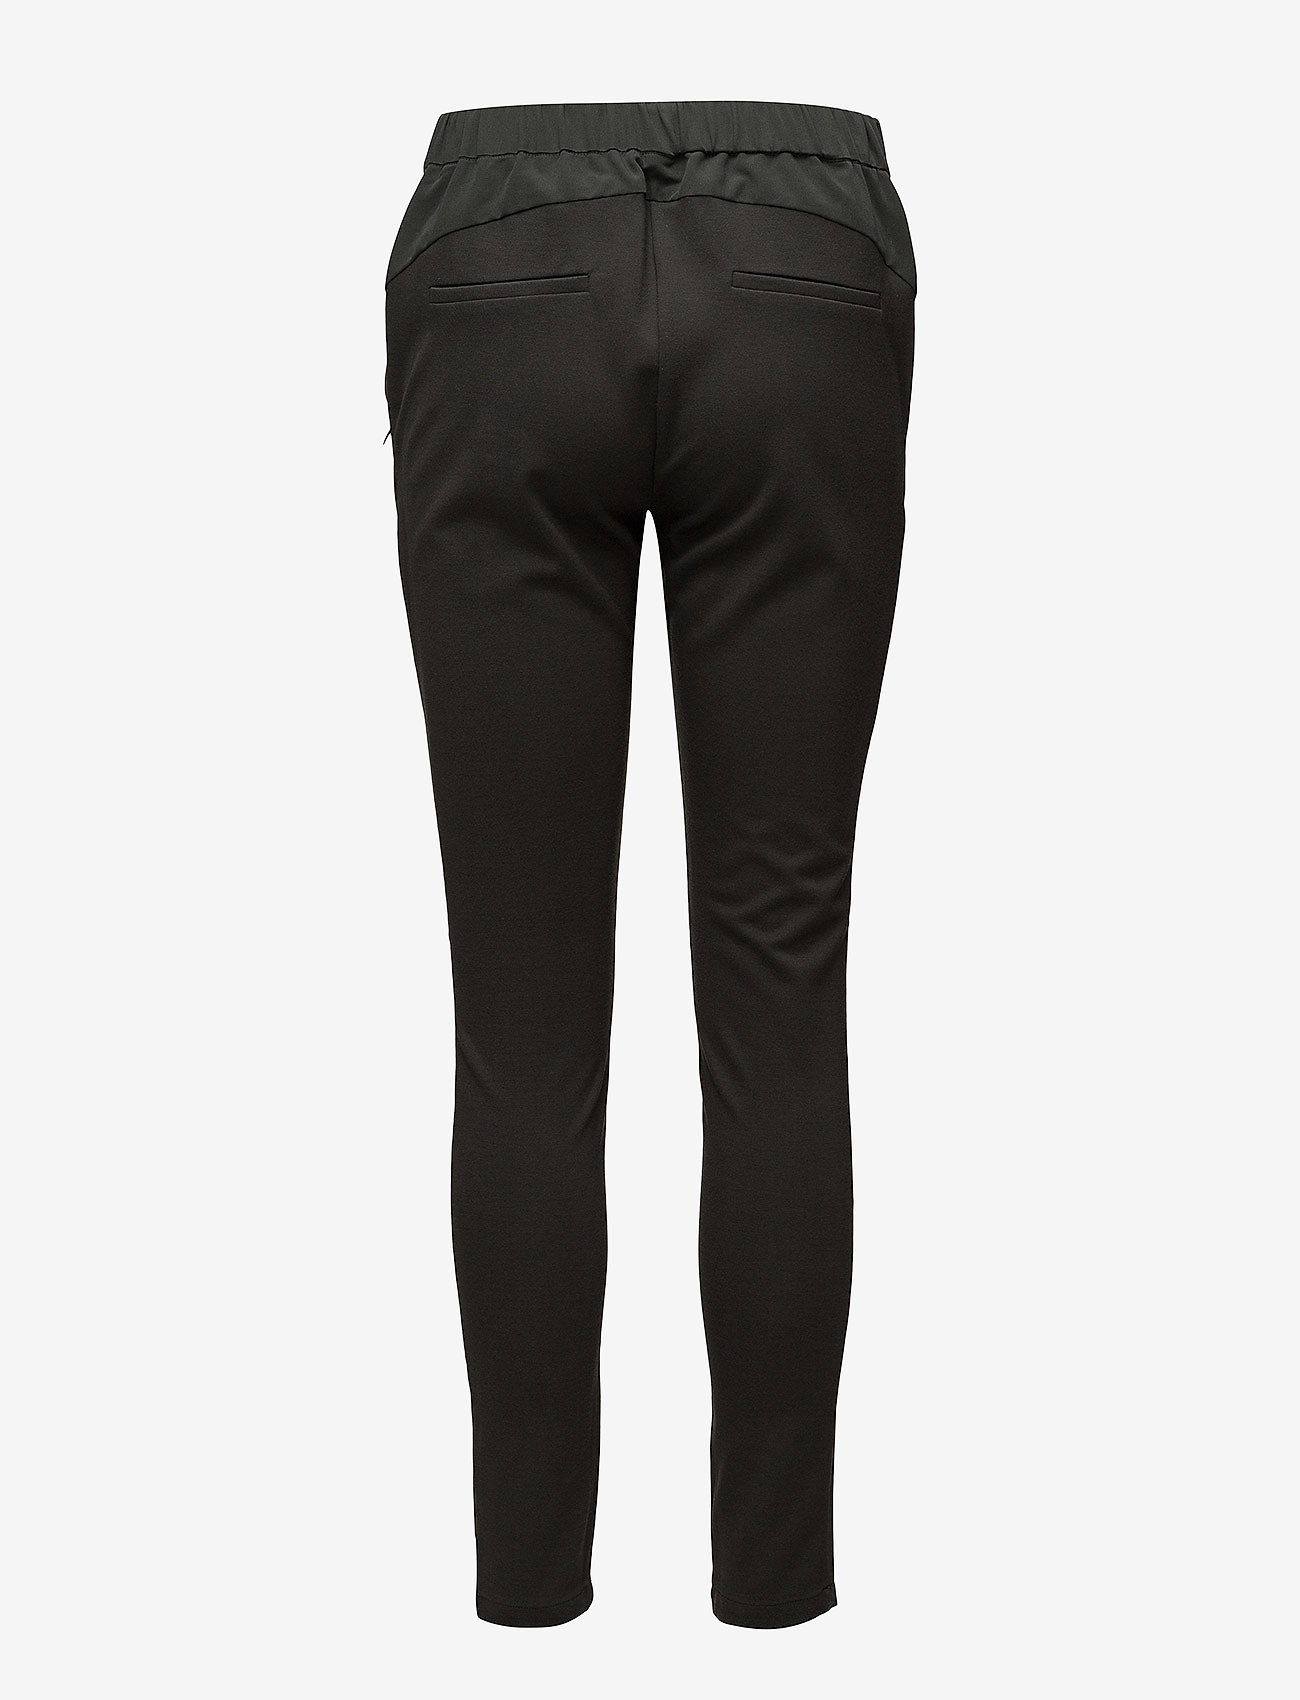 Coster Copenhagen - Pants w. jersey back - slim fit trousers - stone green